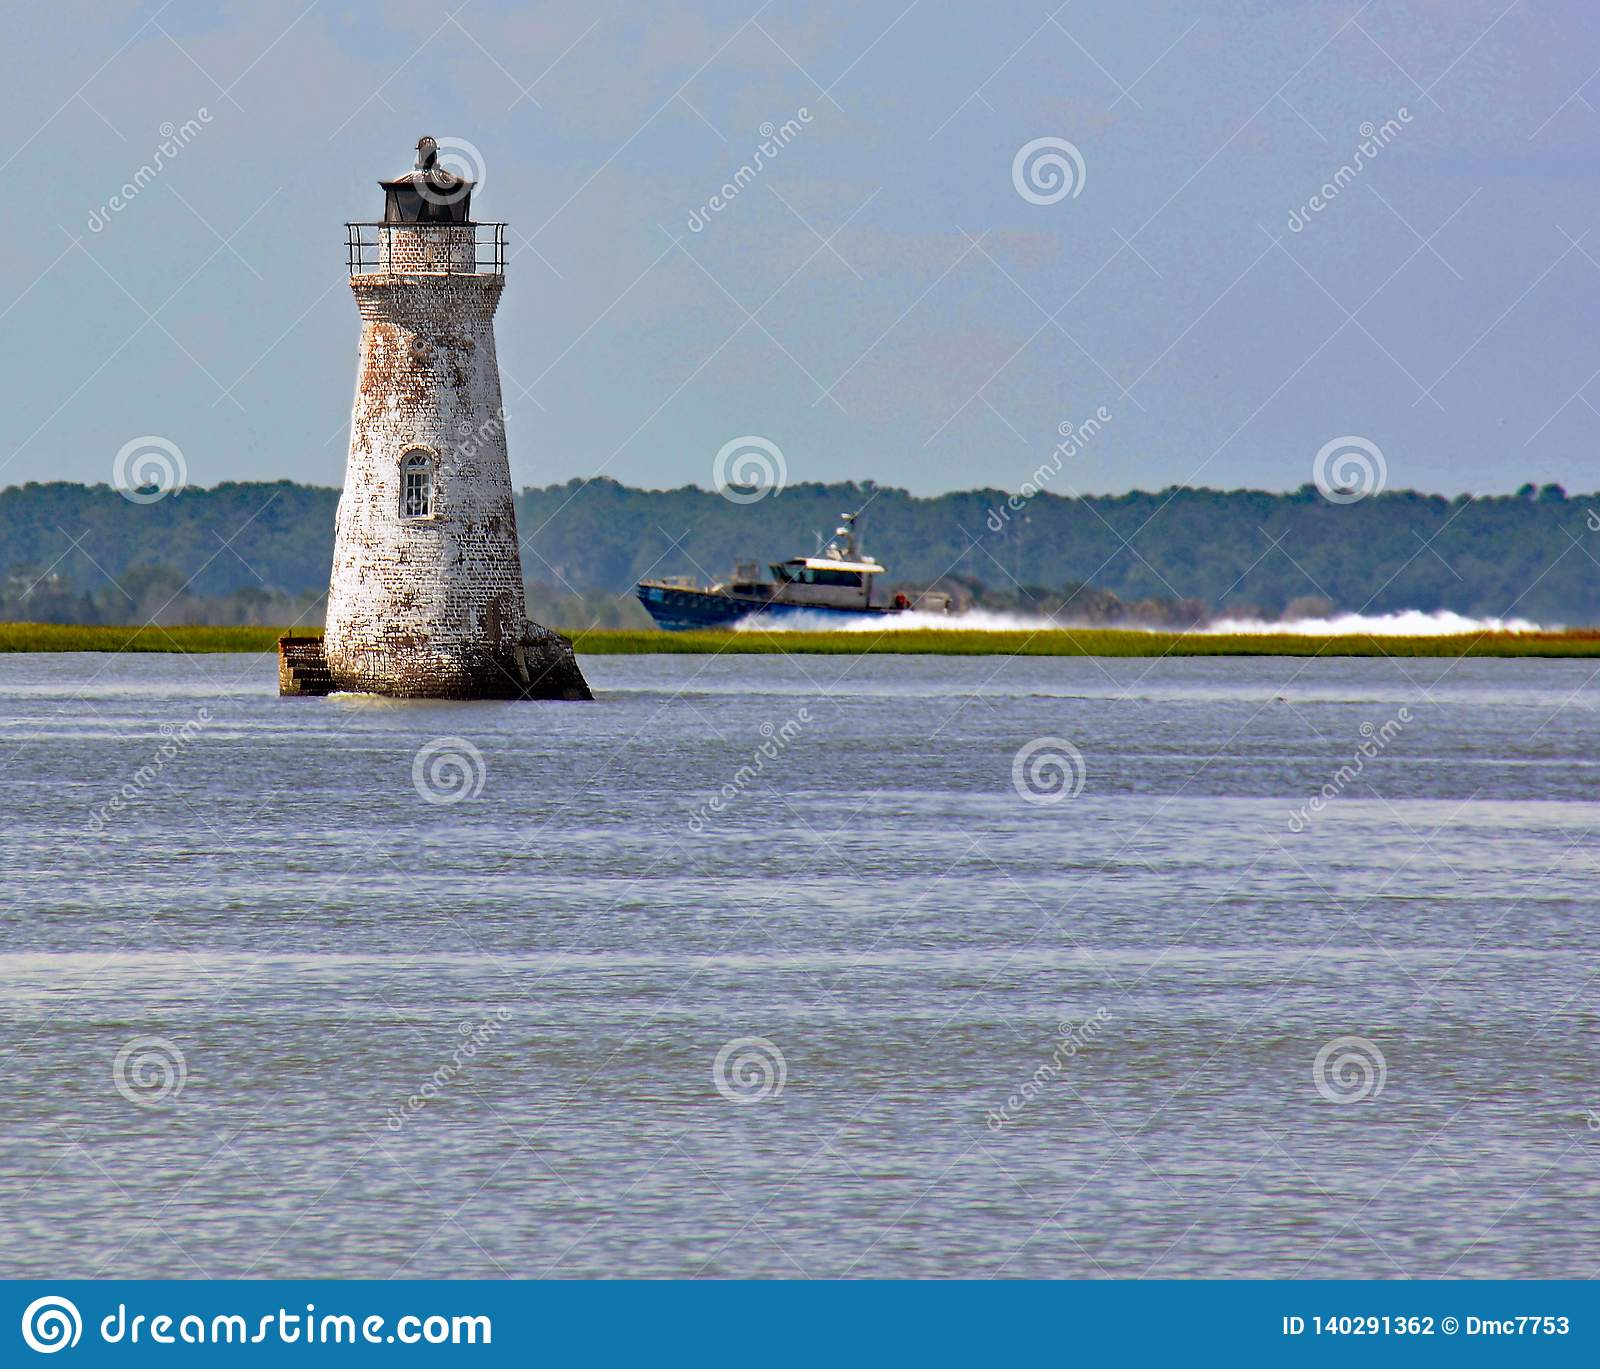 Cockspur Lighthouse on the Savannah River